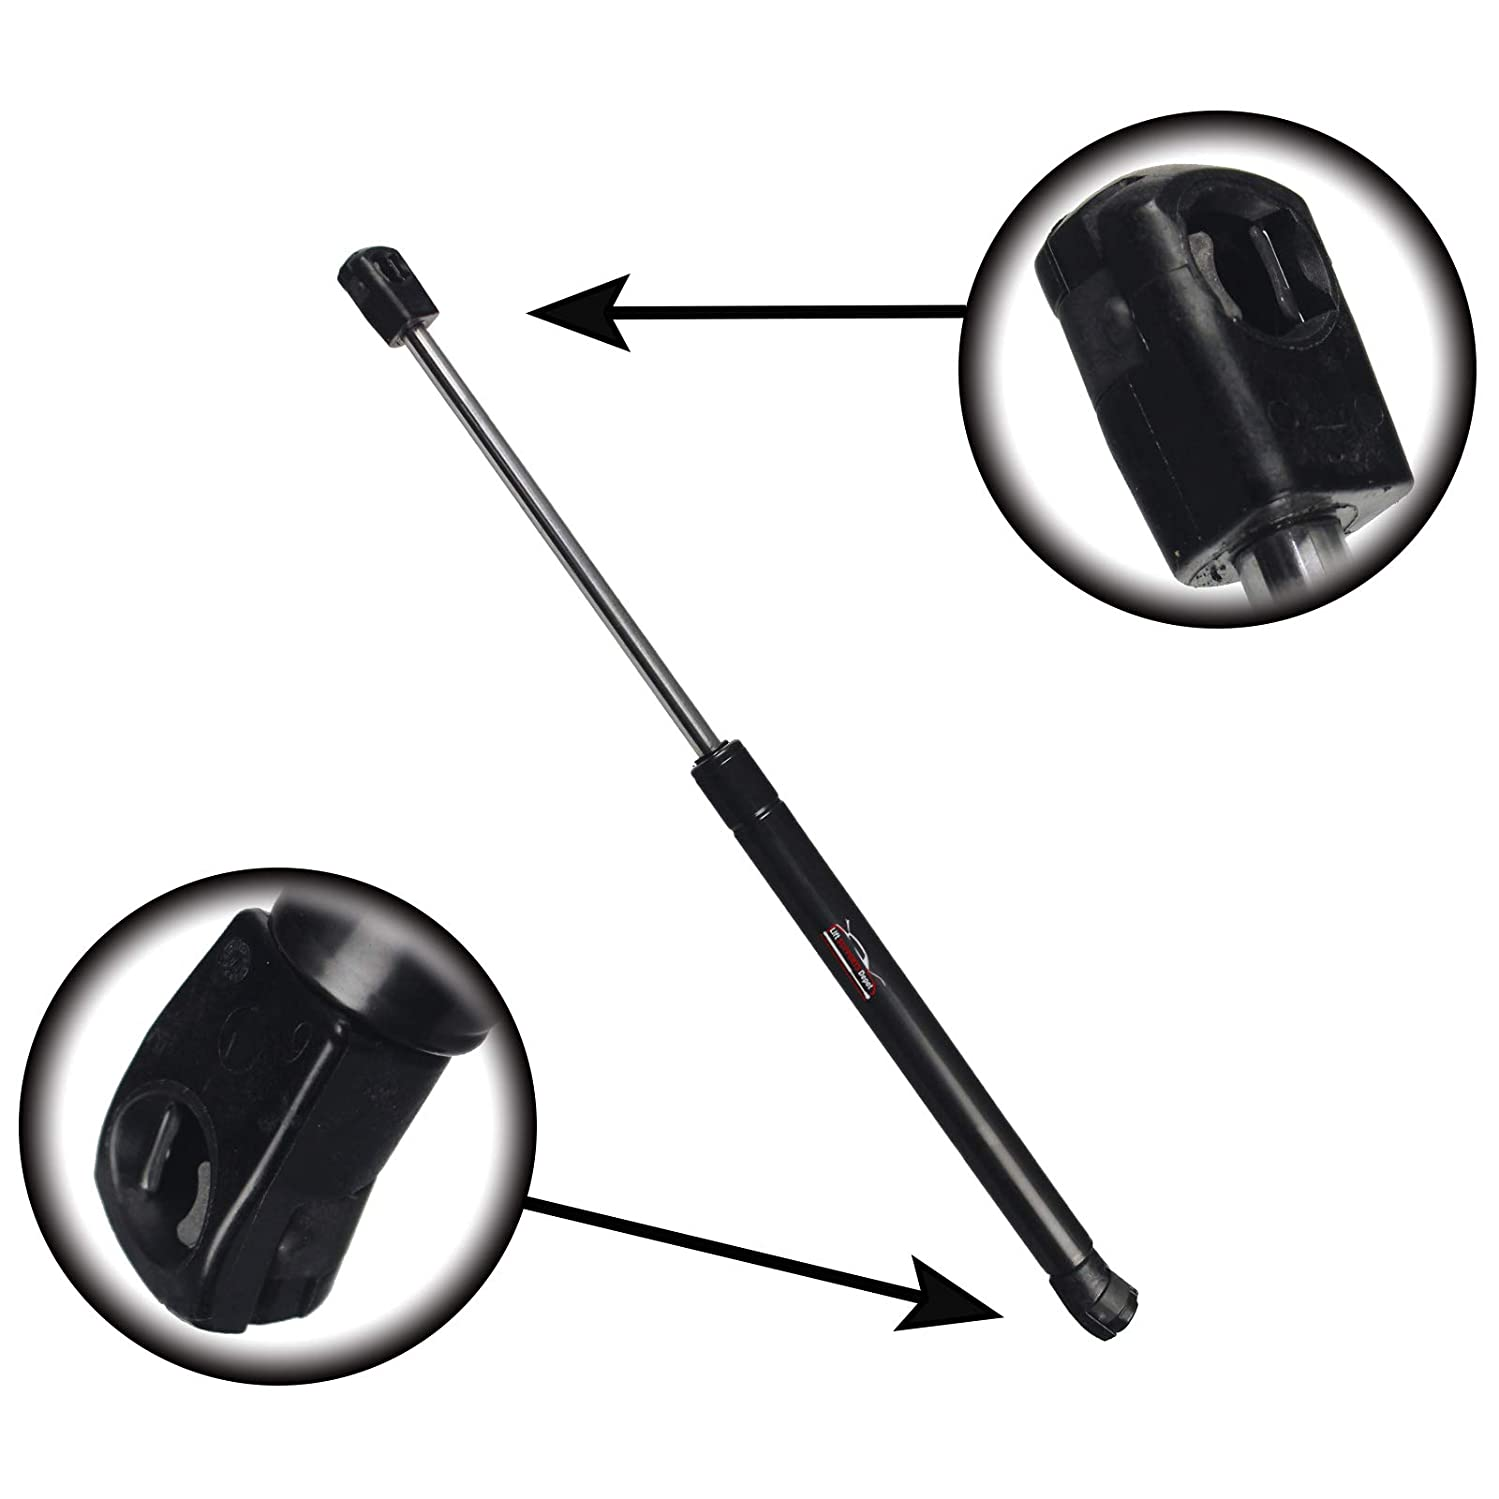 StrongArm 6661 Tailgate Lift Support